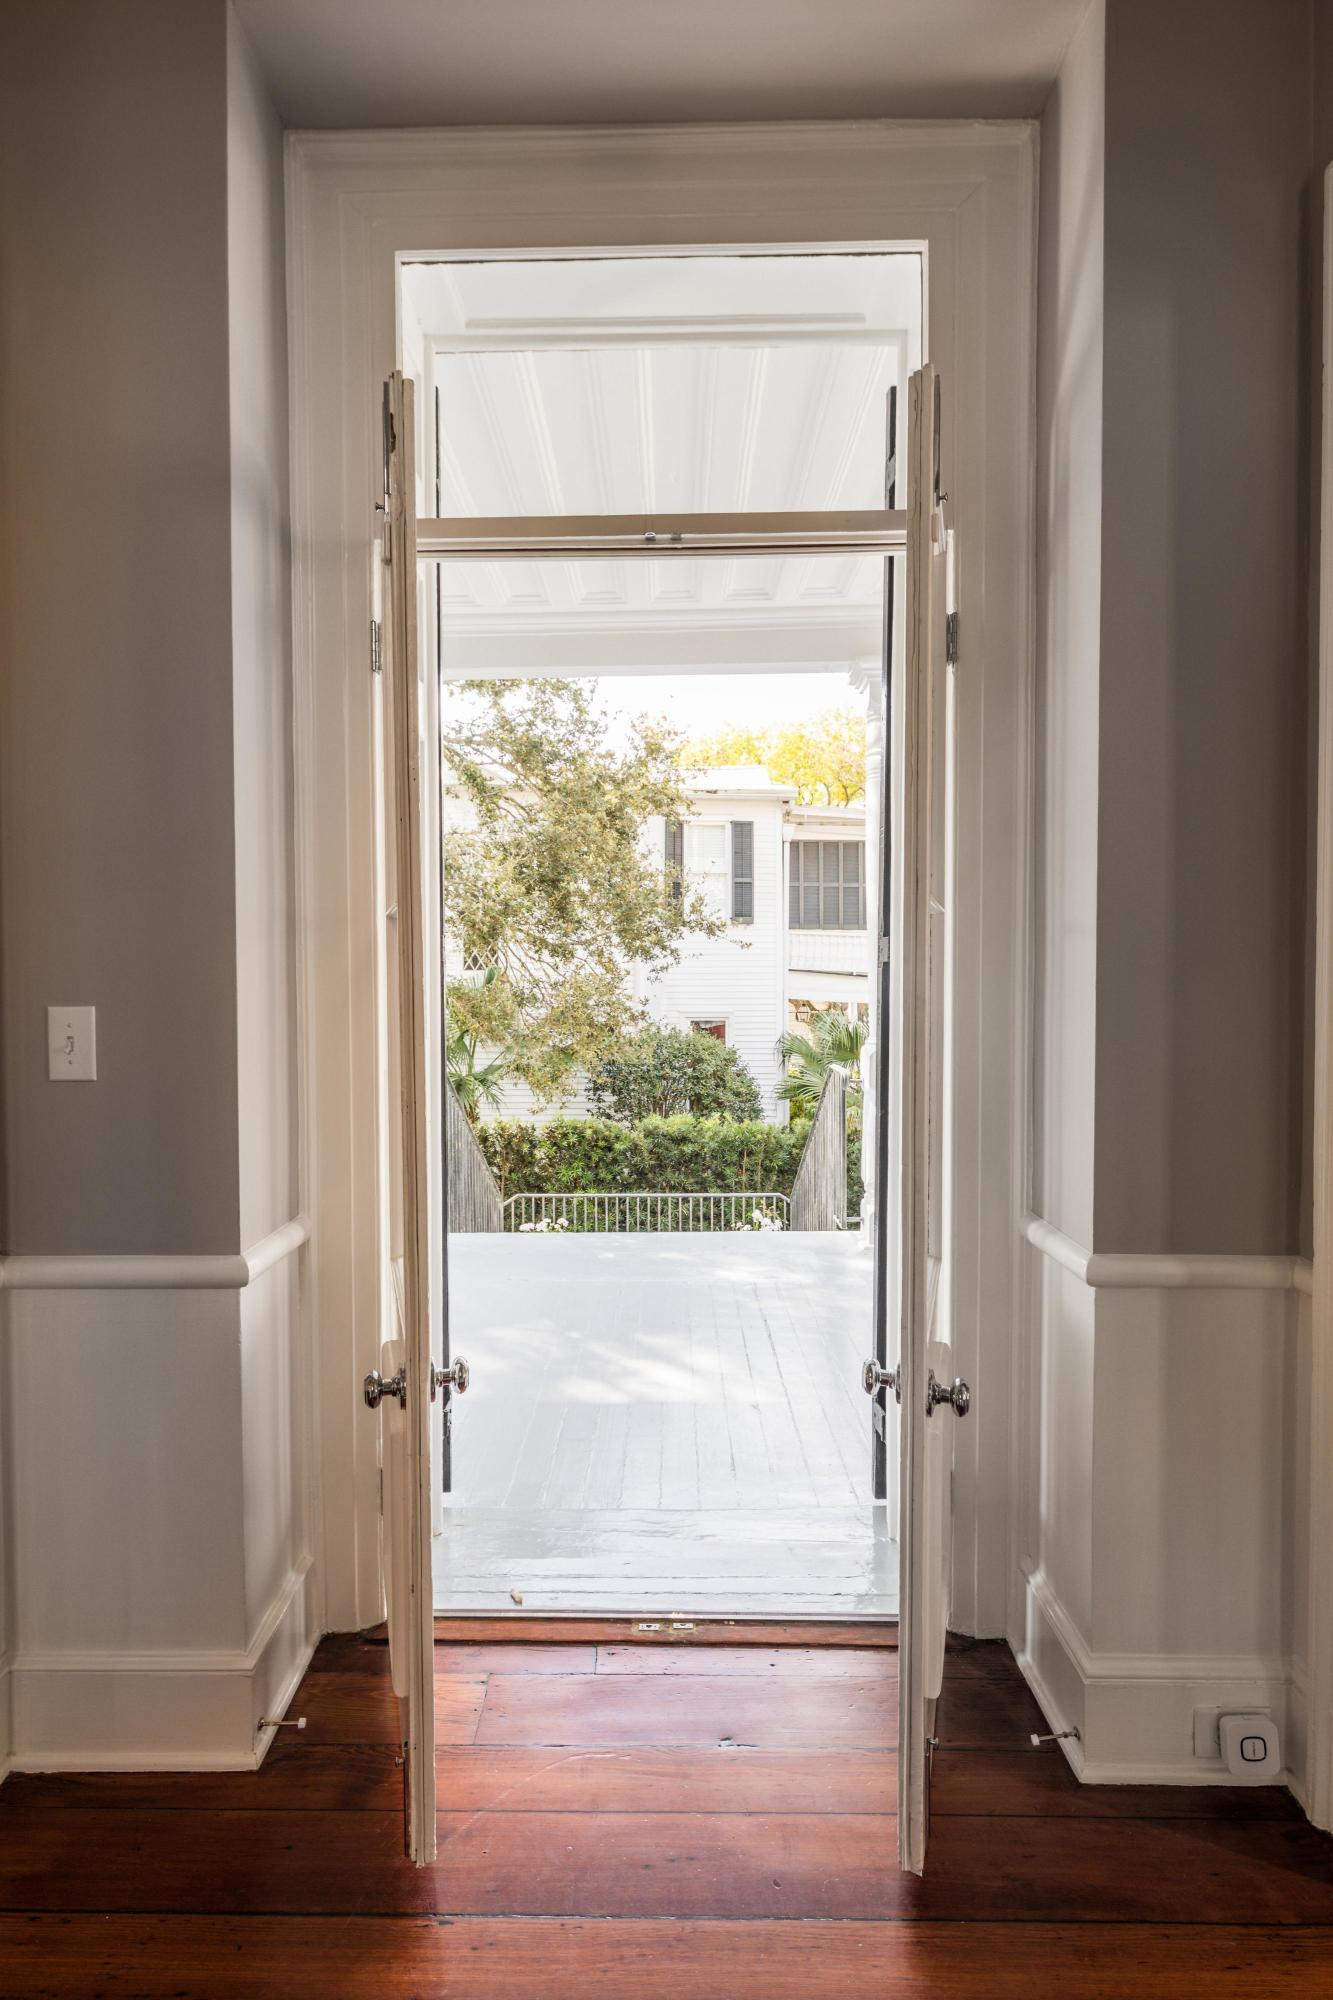 South of Broad Homes For Sale - 18 Church, Charleston, SC - 96